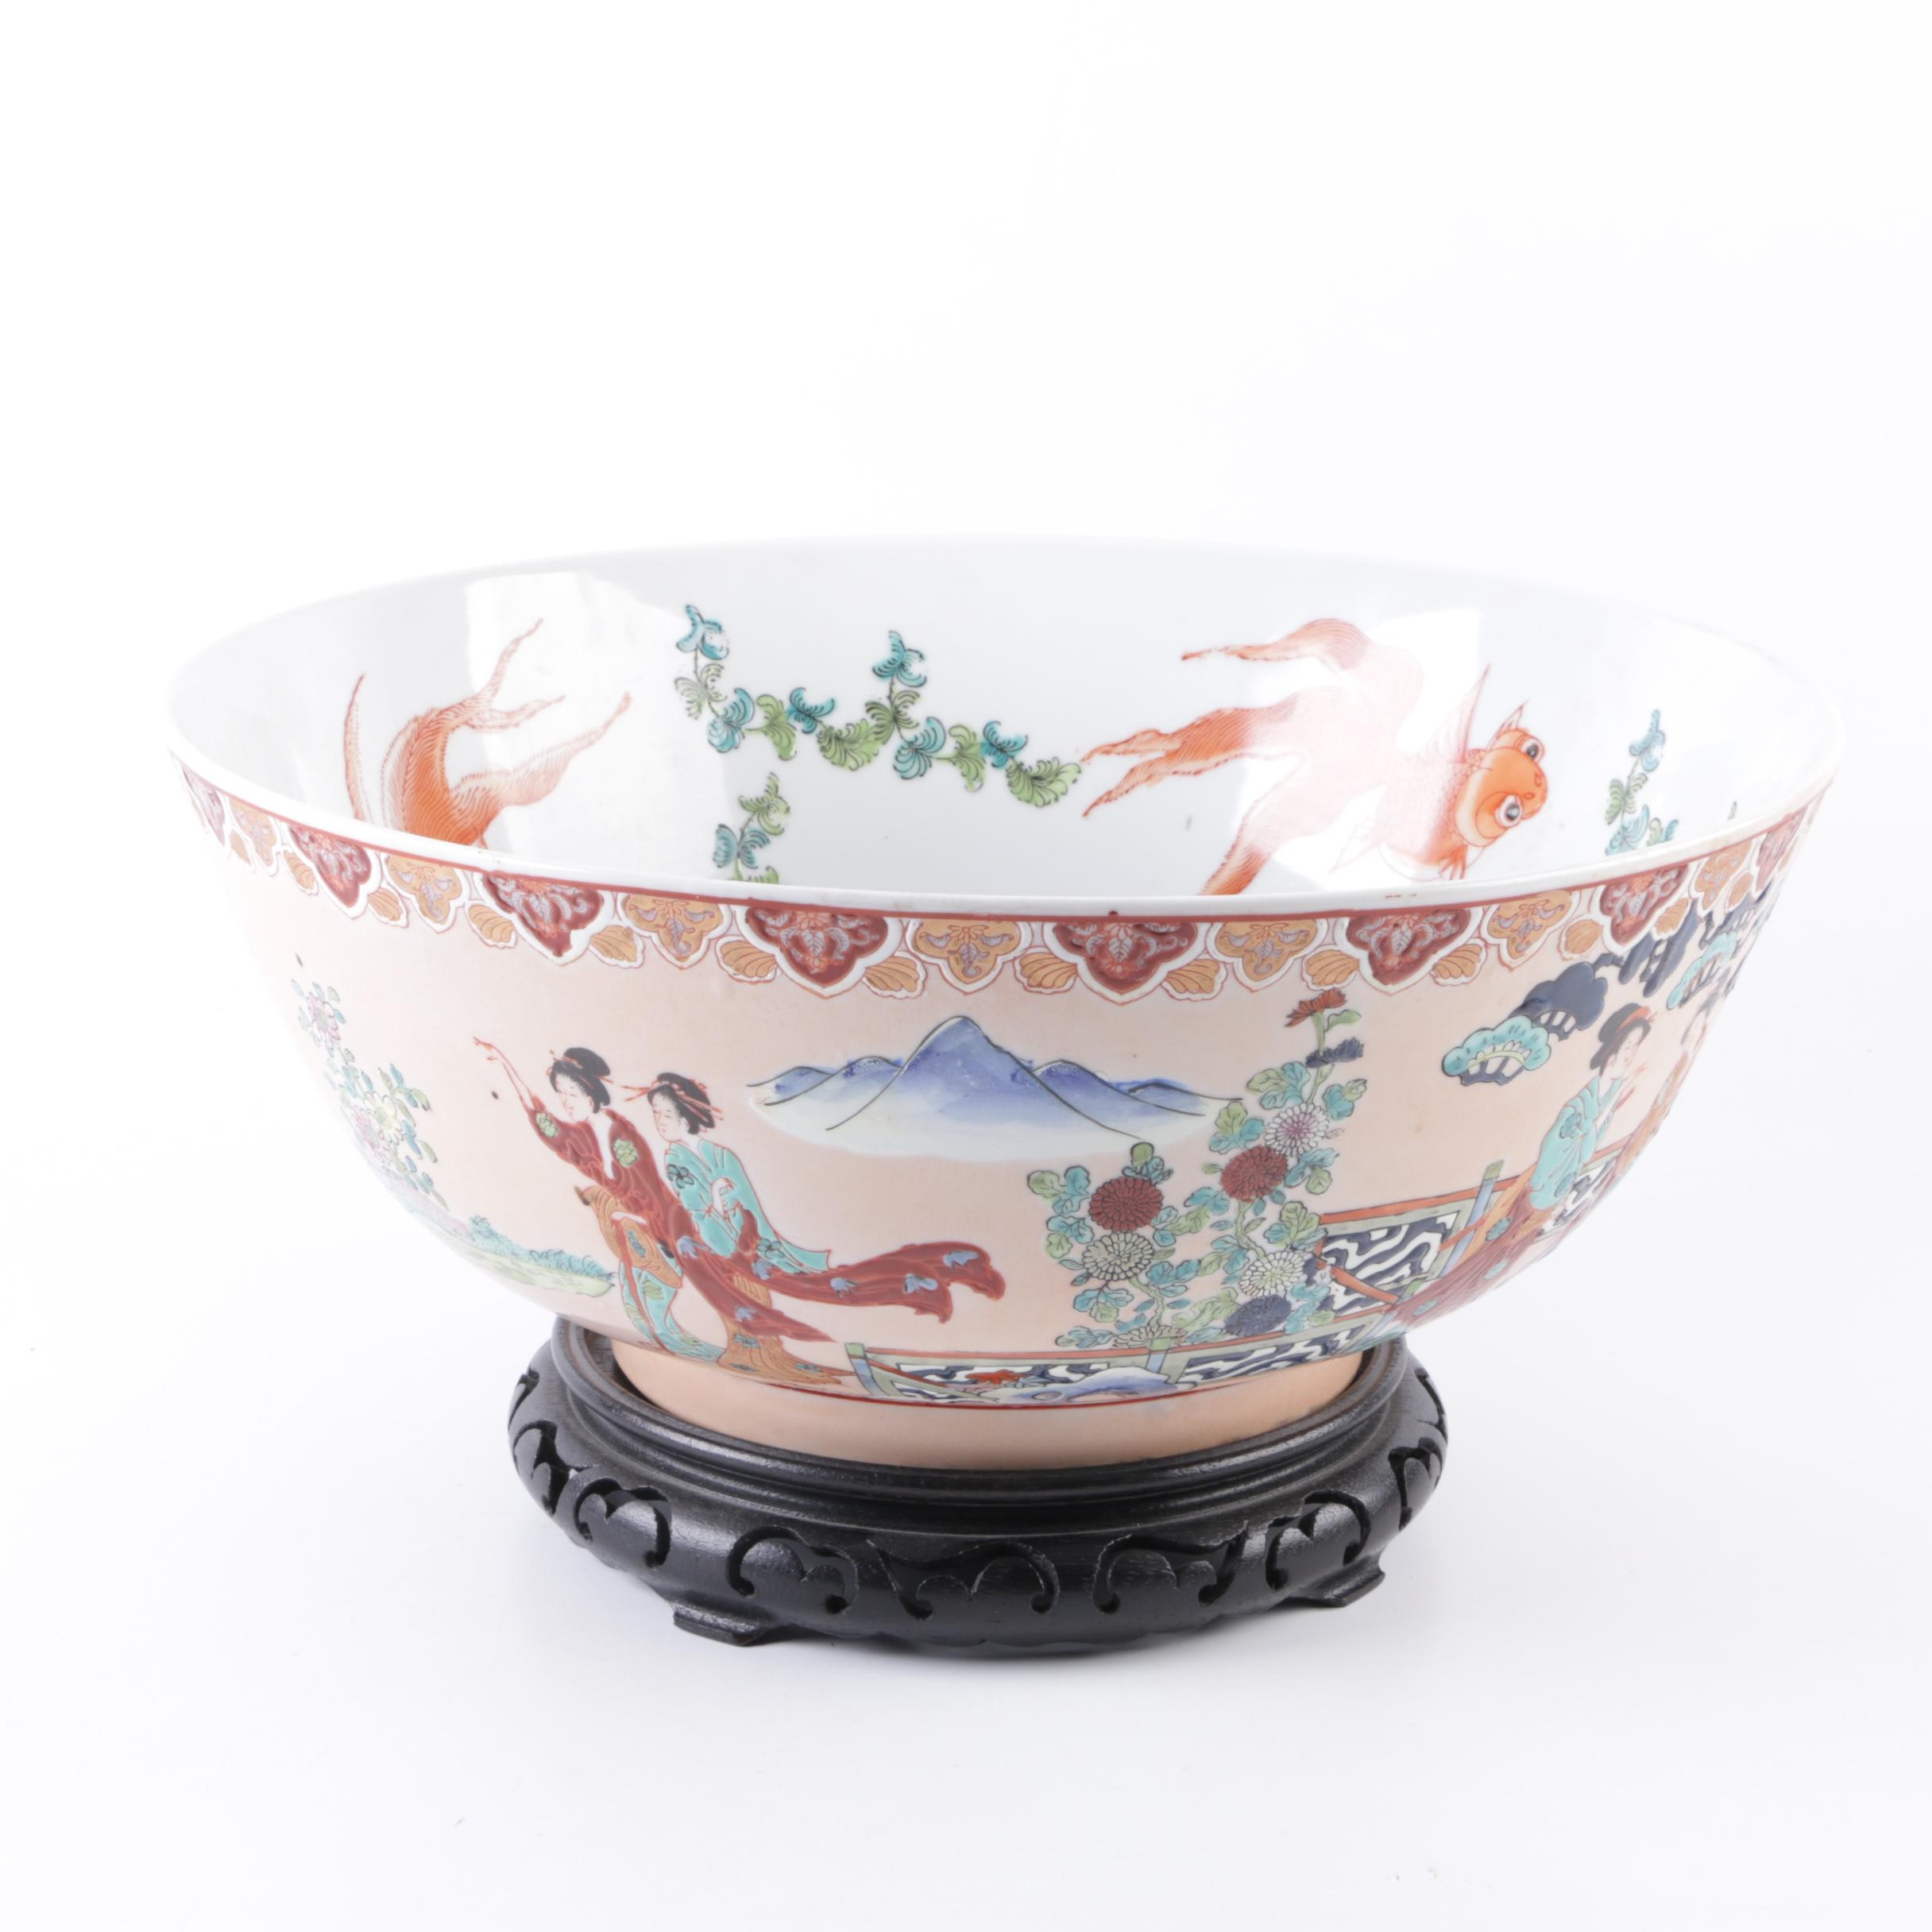 Large Decorative Japanese Koi Bowl with Carved Stand